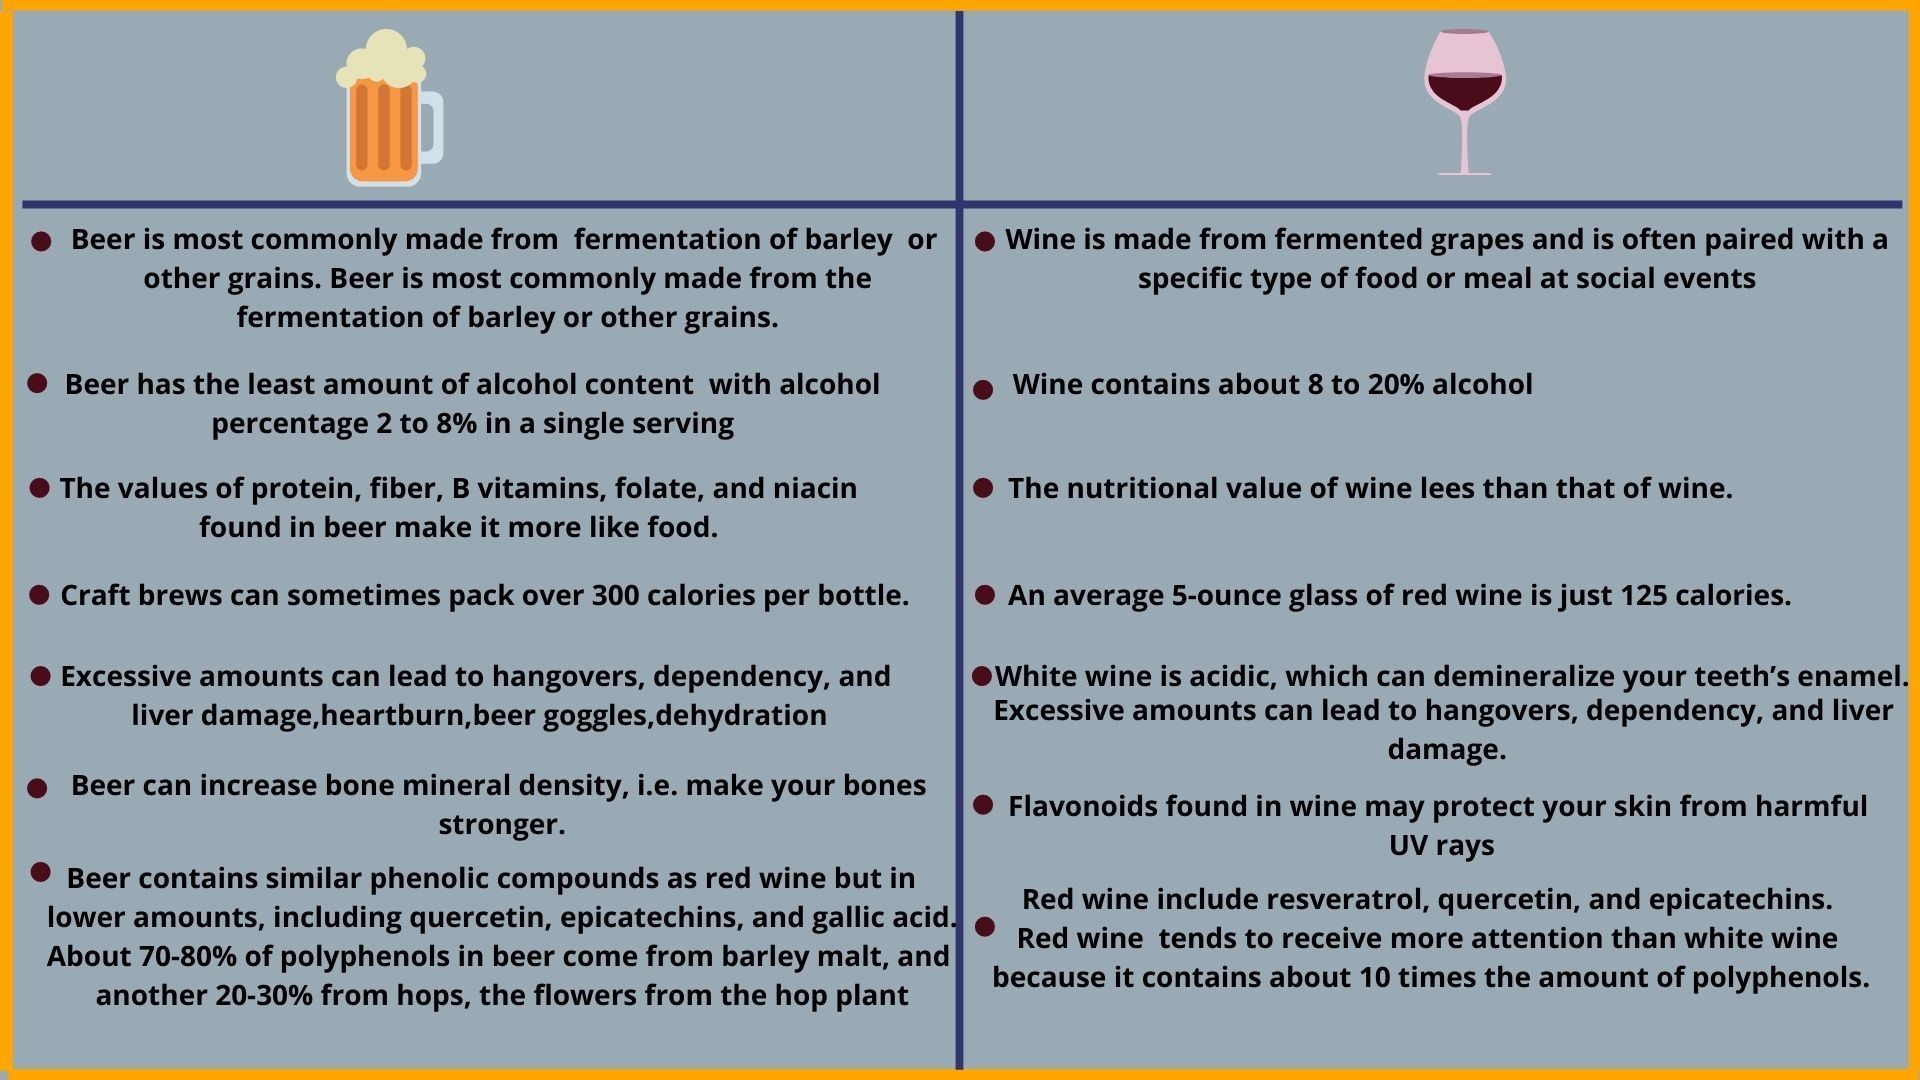 About Beer and Wine